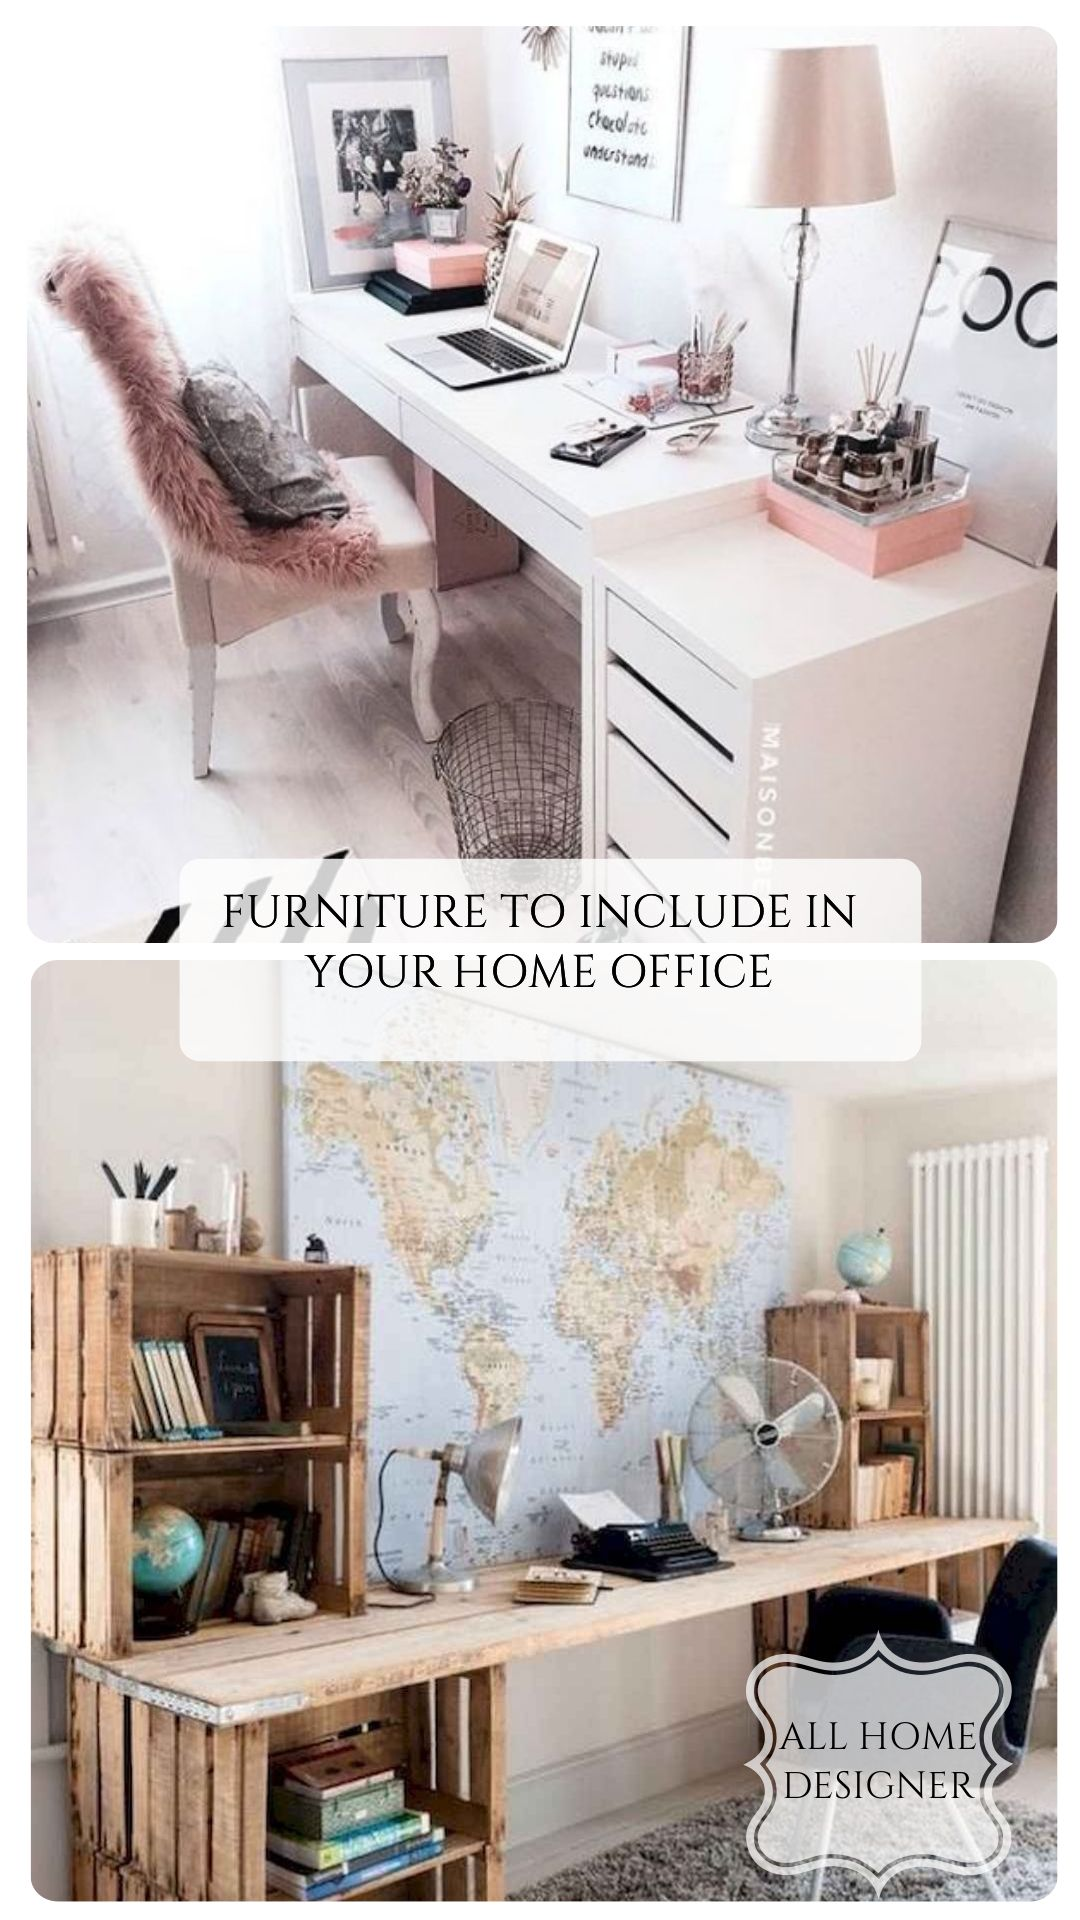 Home Office Furniture Ideas Home Office Furniture Home Office Design Office Design Inspiration